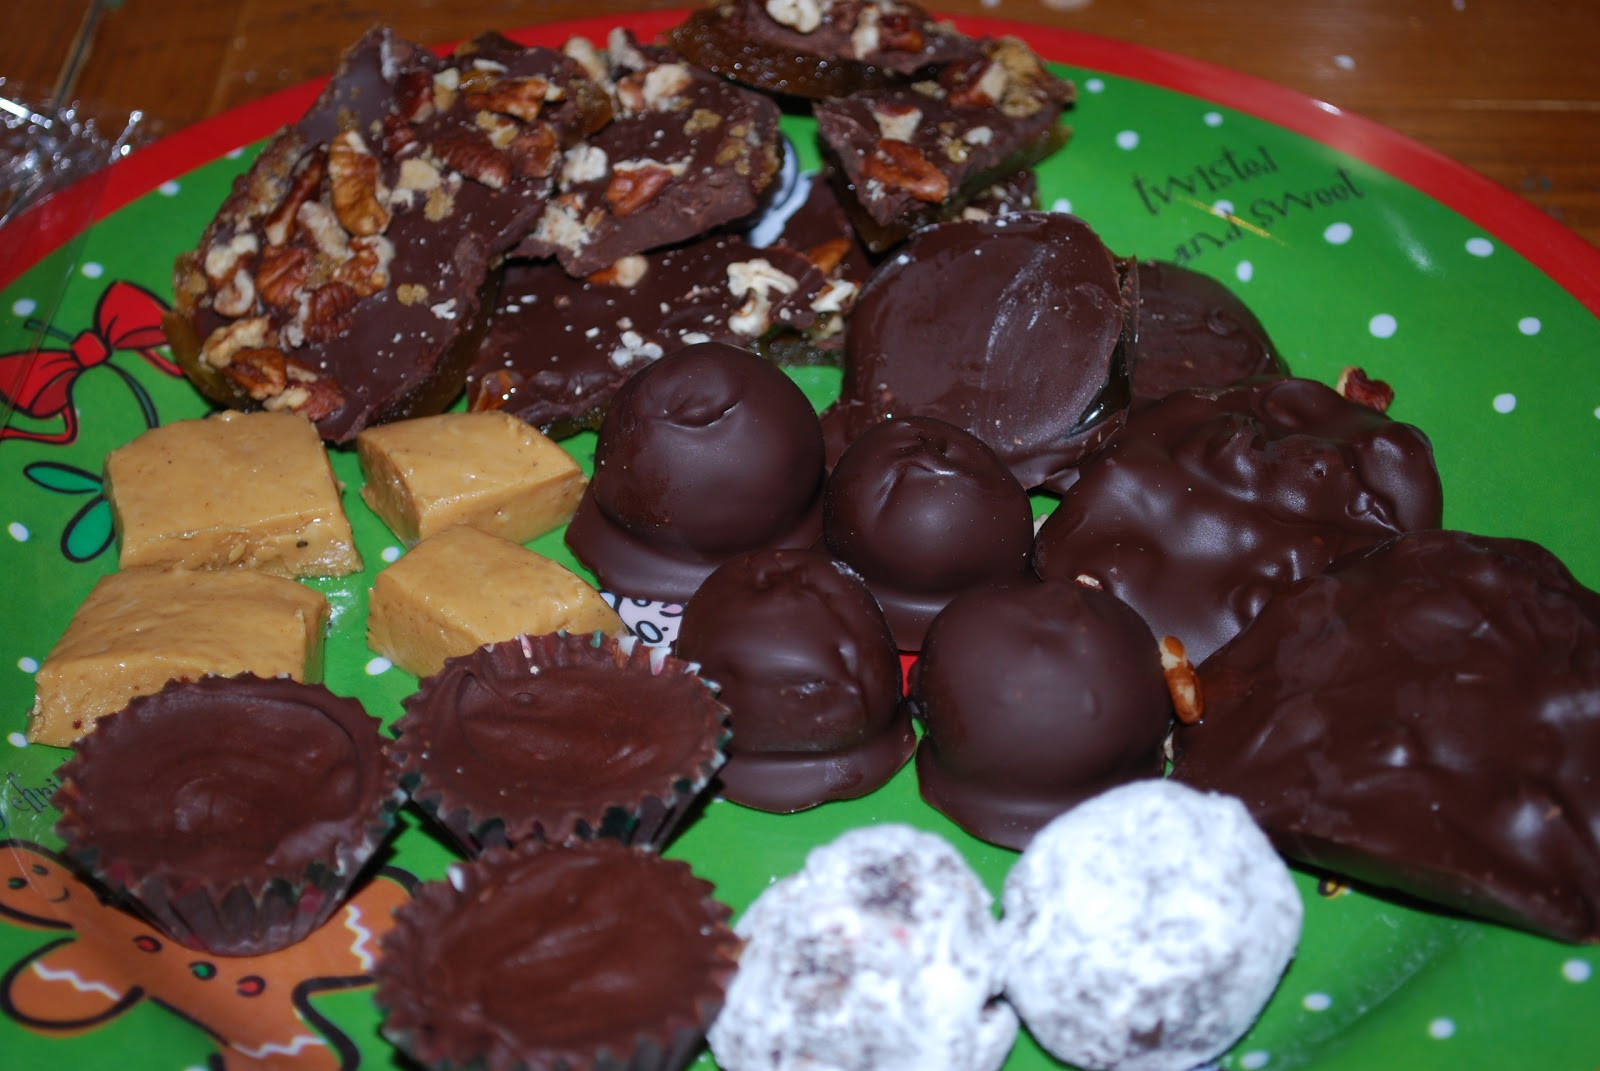 Christmas Candy Recipes  The Peaceful Kitchen Delicious Vegan Christmas Candy Recipes